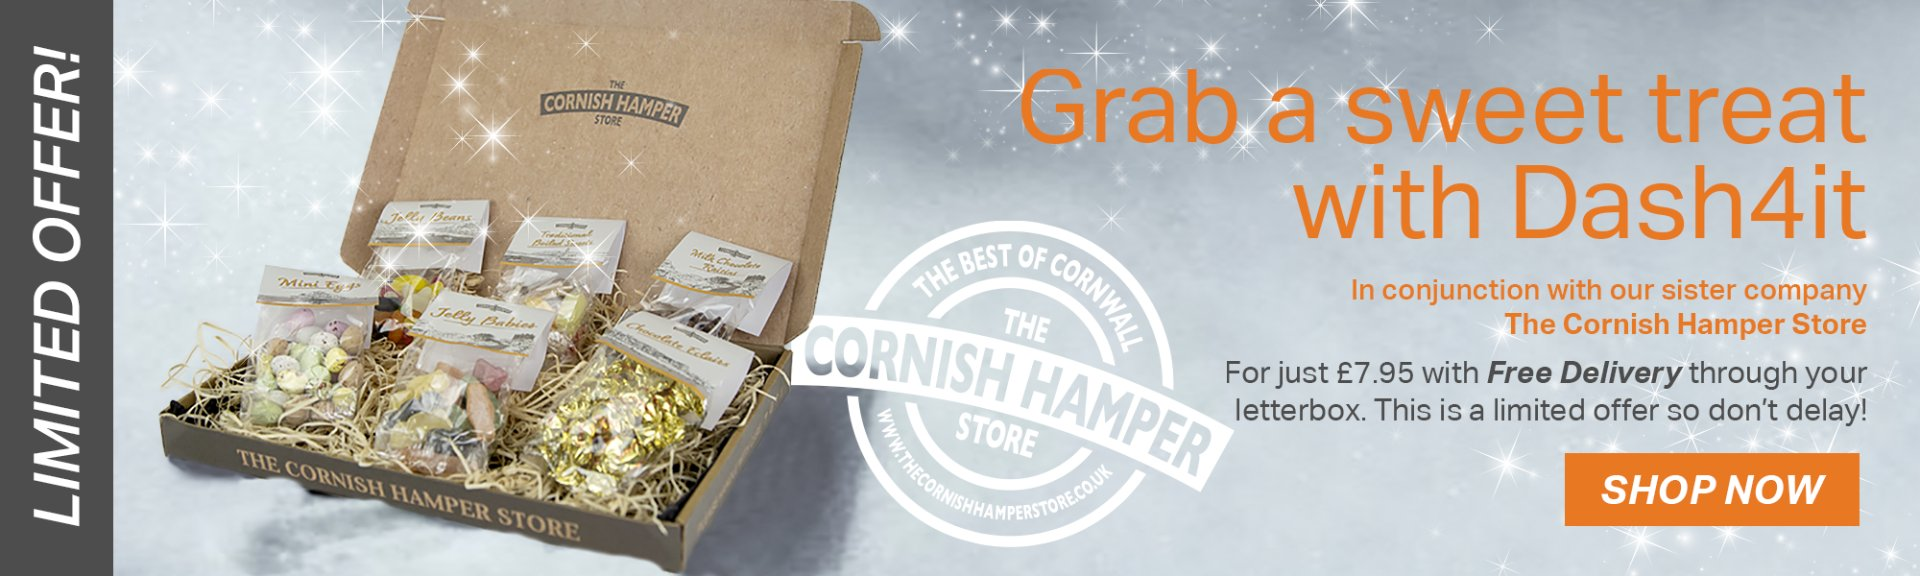 Letterbox Hamper Offer